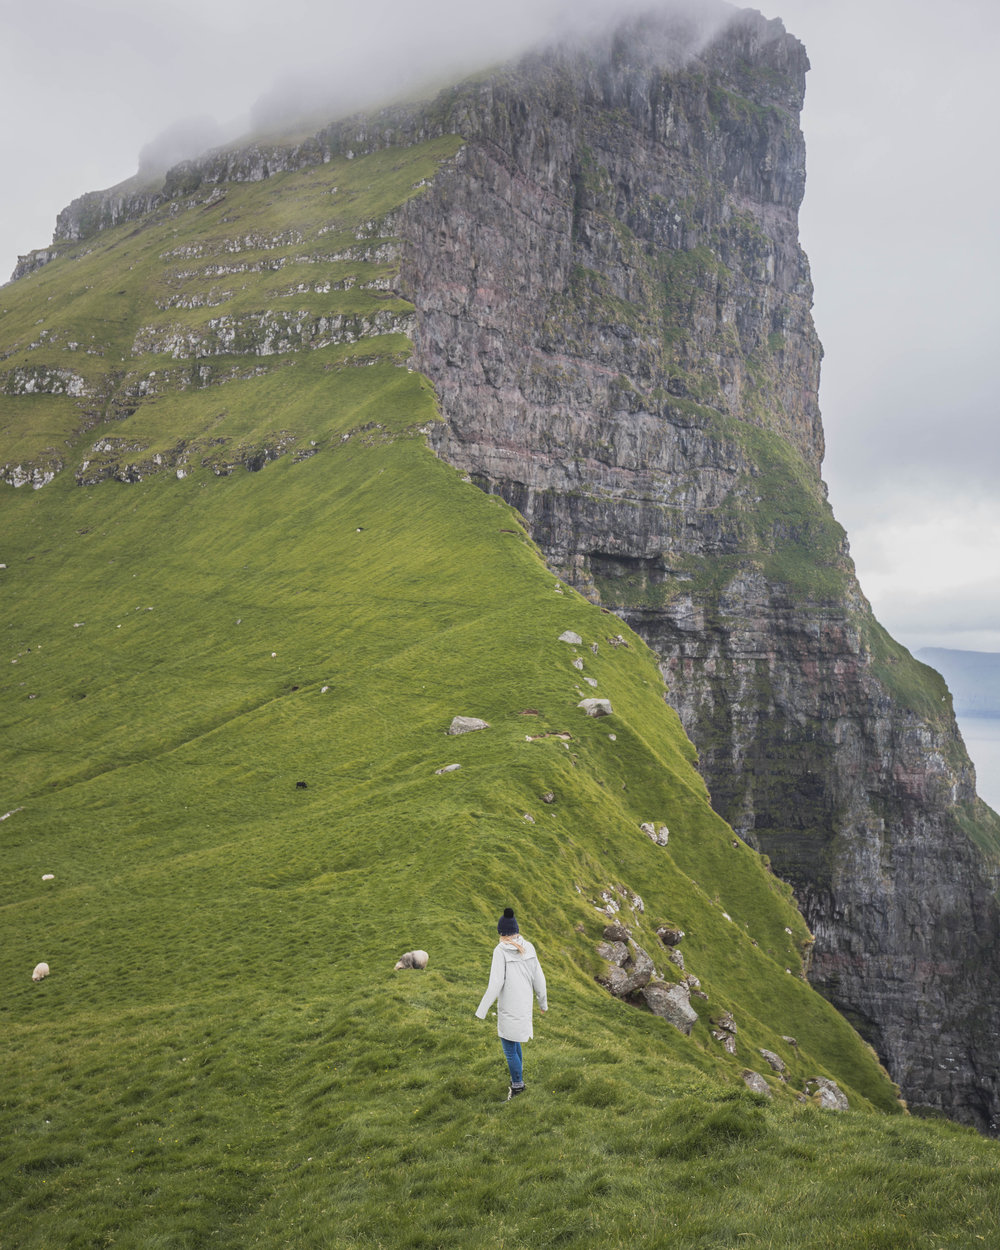 Kalsoy lighthough faroe islands itinerary